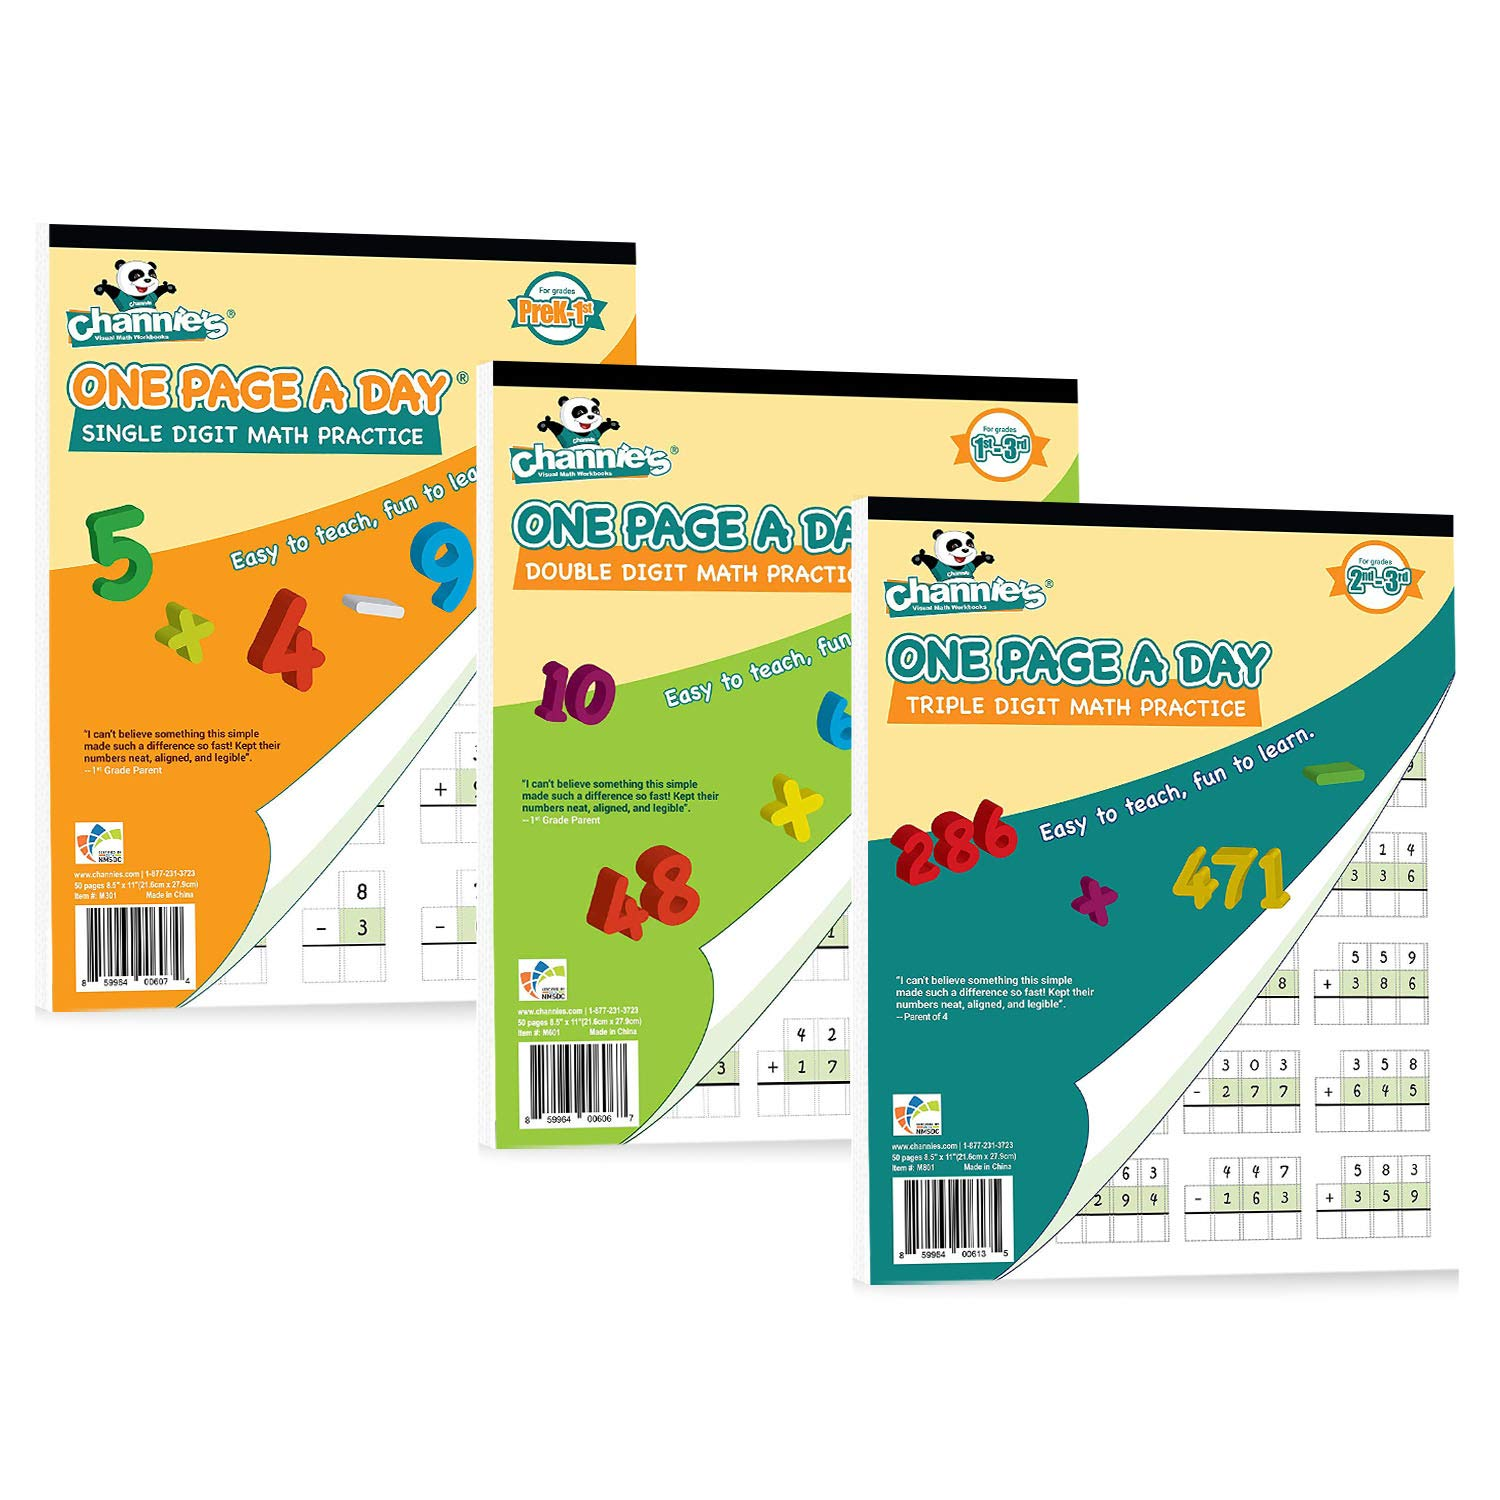 Channie's One Page A Day Single, Double, Triple Digit Math Practice Worksheets 3 Pack! Grades 2-4th Size 8.5'' x 11'' by Channie's